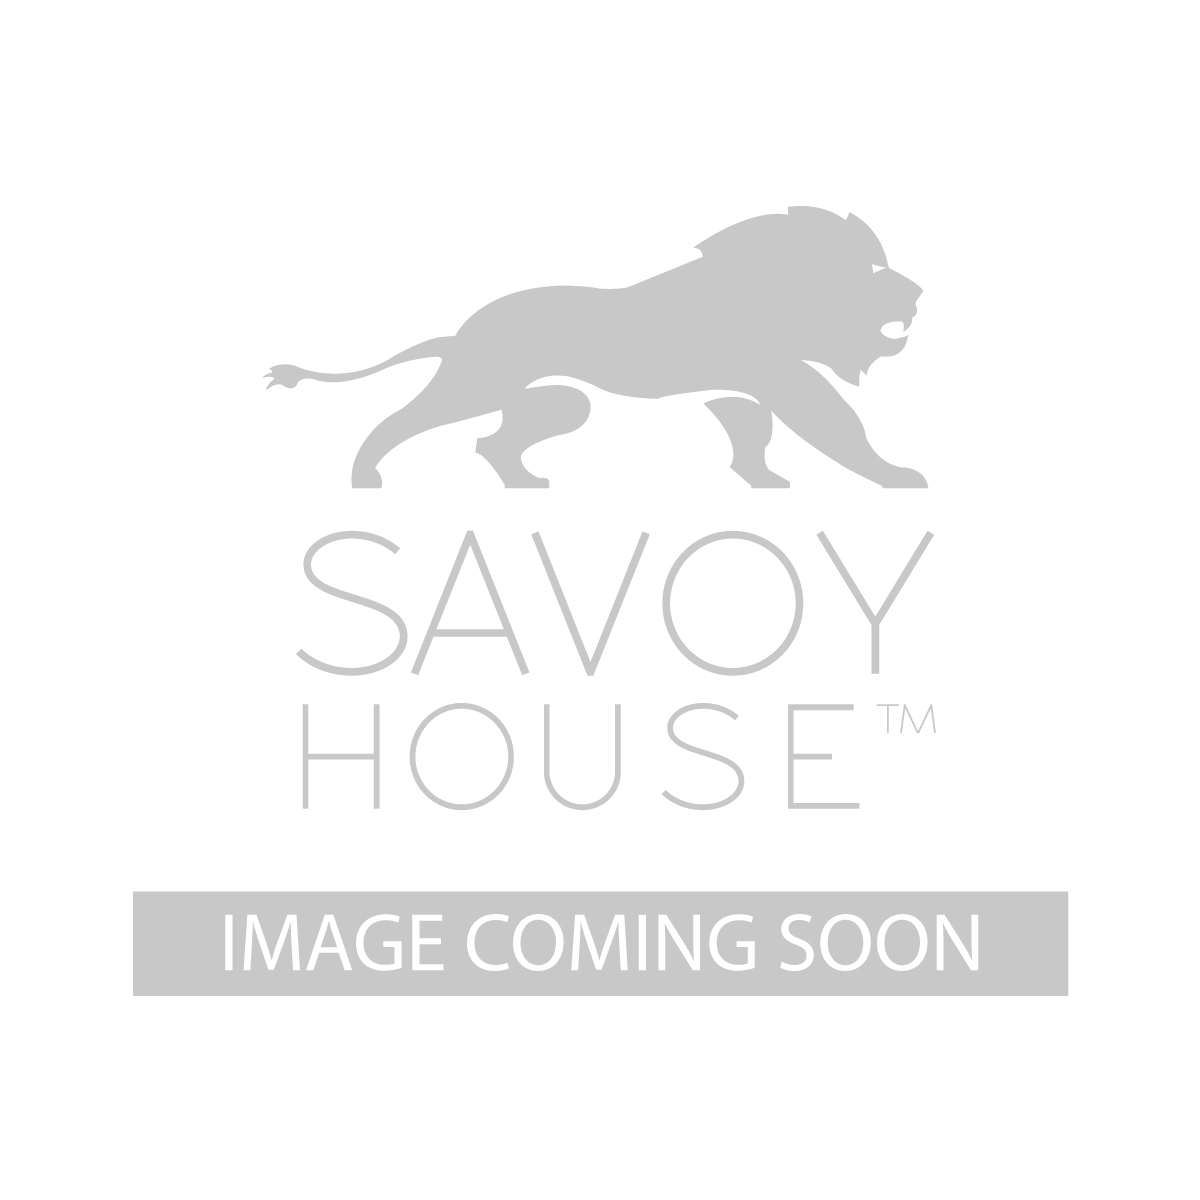 52 6000 5dw 109 winchester 5 blade ceiling fan by savoy house winchester 5 blade ceiling fan aloadofball Image collections